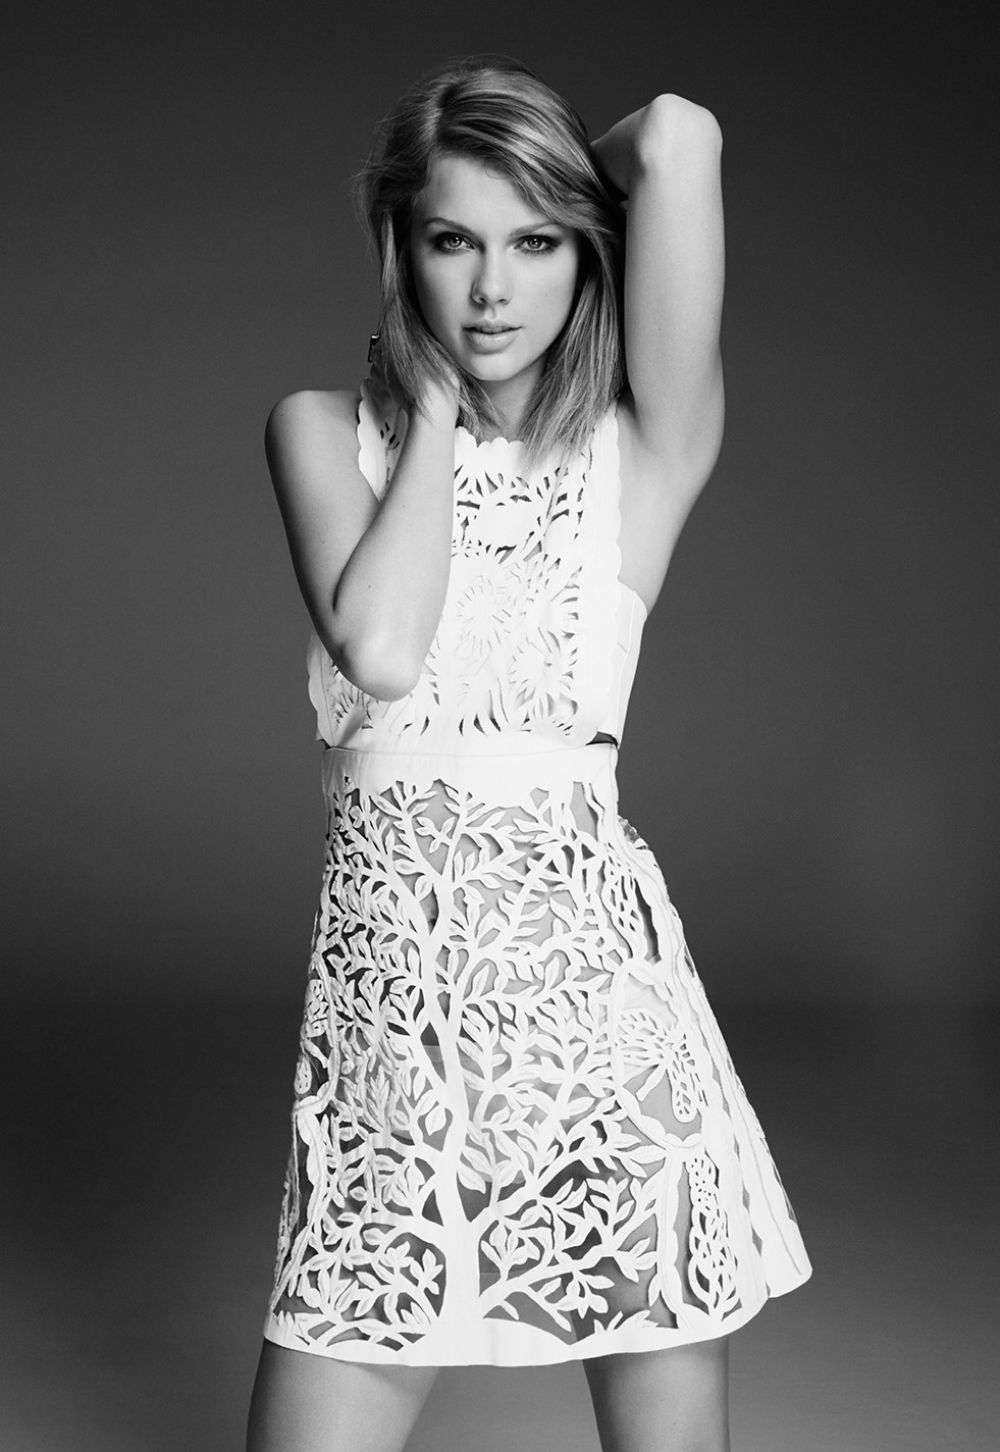 TAYLOR SWIFT by Damon Baker for Glamour Magazine, June 2015 Issue